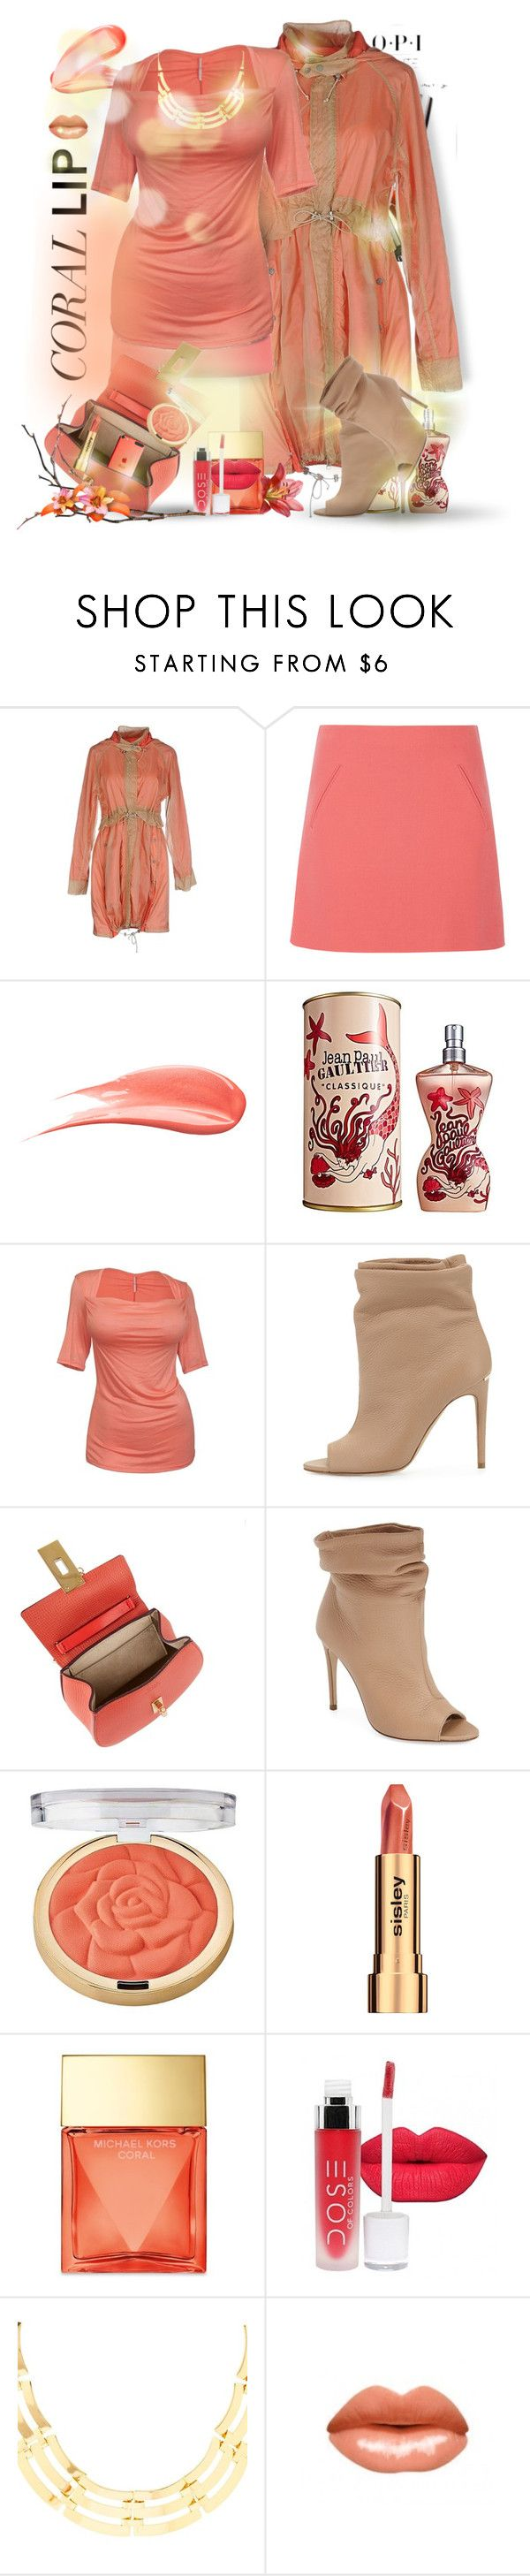 Spring Beauty: Corals by falticska-cerasella on Polyvore featuring bellezza, NARS Cosmetics, Sisley, Hourglass Cosmetics, Milani, Jean-Paul Gaultier, Michael Kors, Charlotte Russe, Chloé and Hoss Intropia